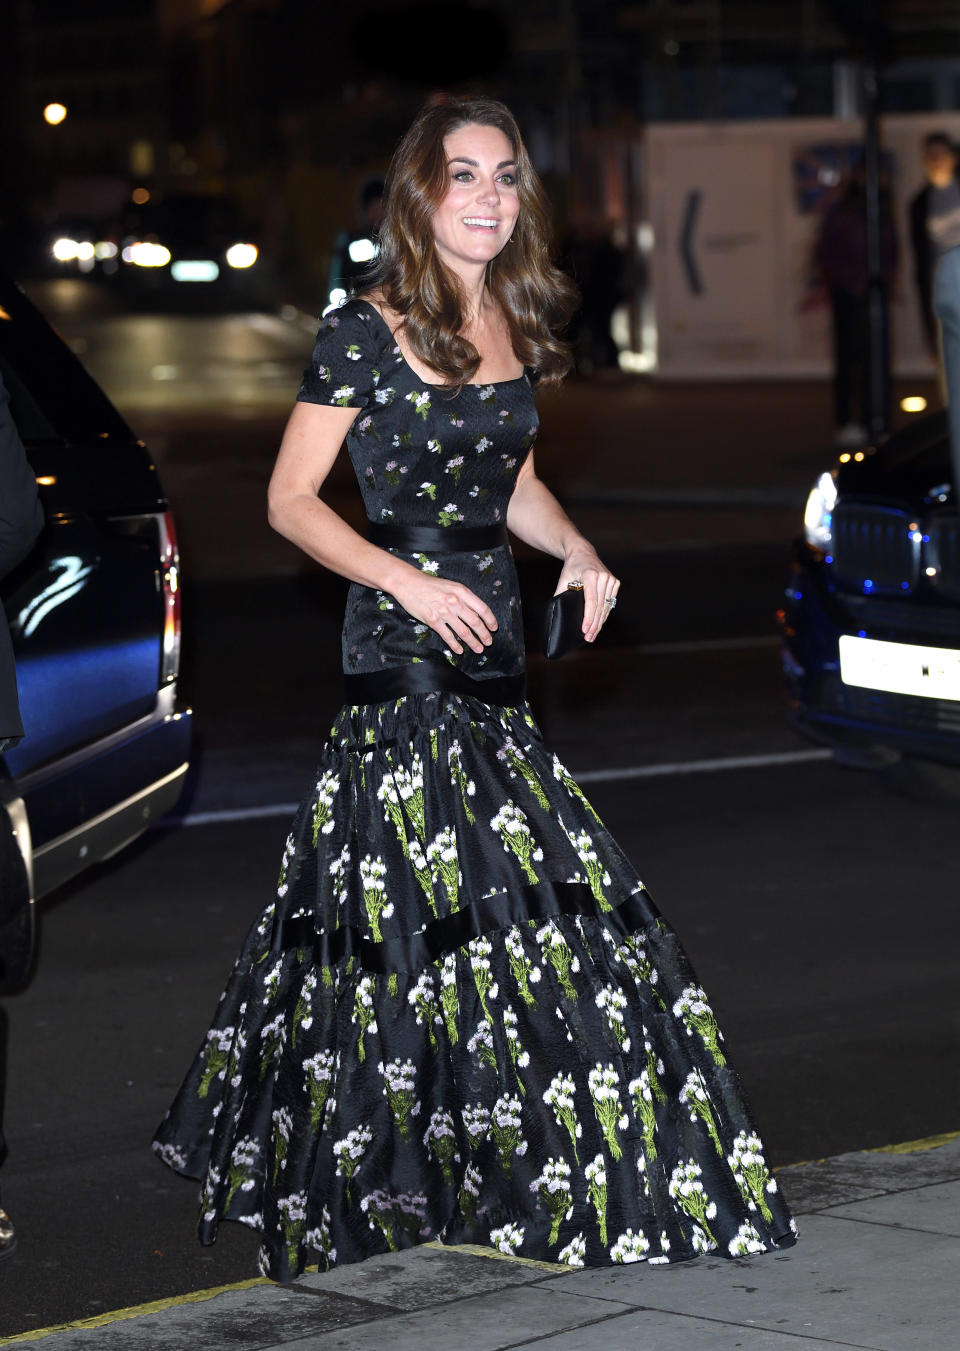 For the National Portrait Gallery gala event, the Duchess of Cambridge – who is a patron at the gallery – rewore an Alexander McQueen gown. [Photo: Getty]